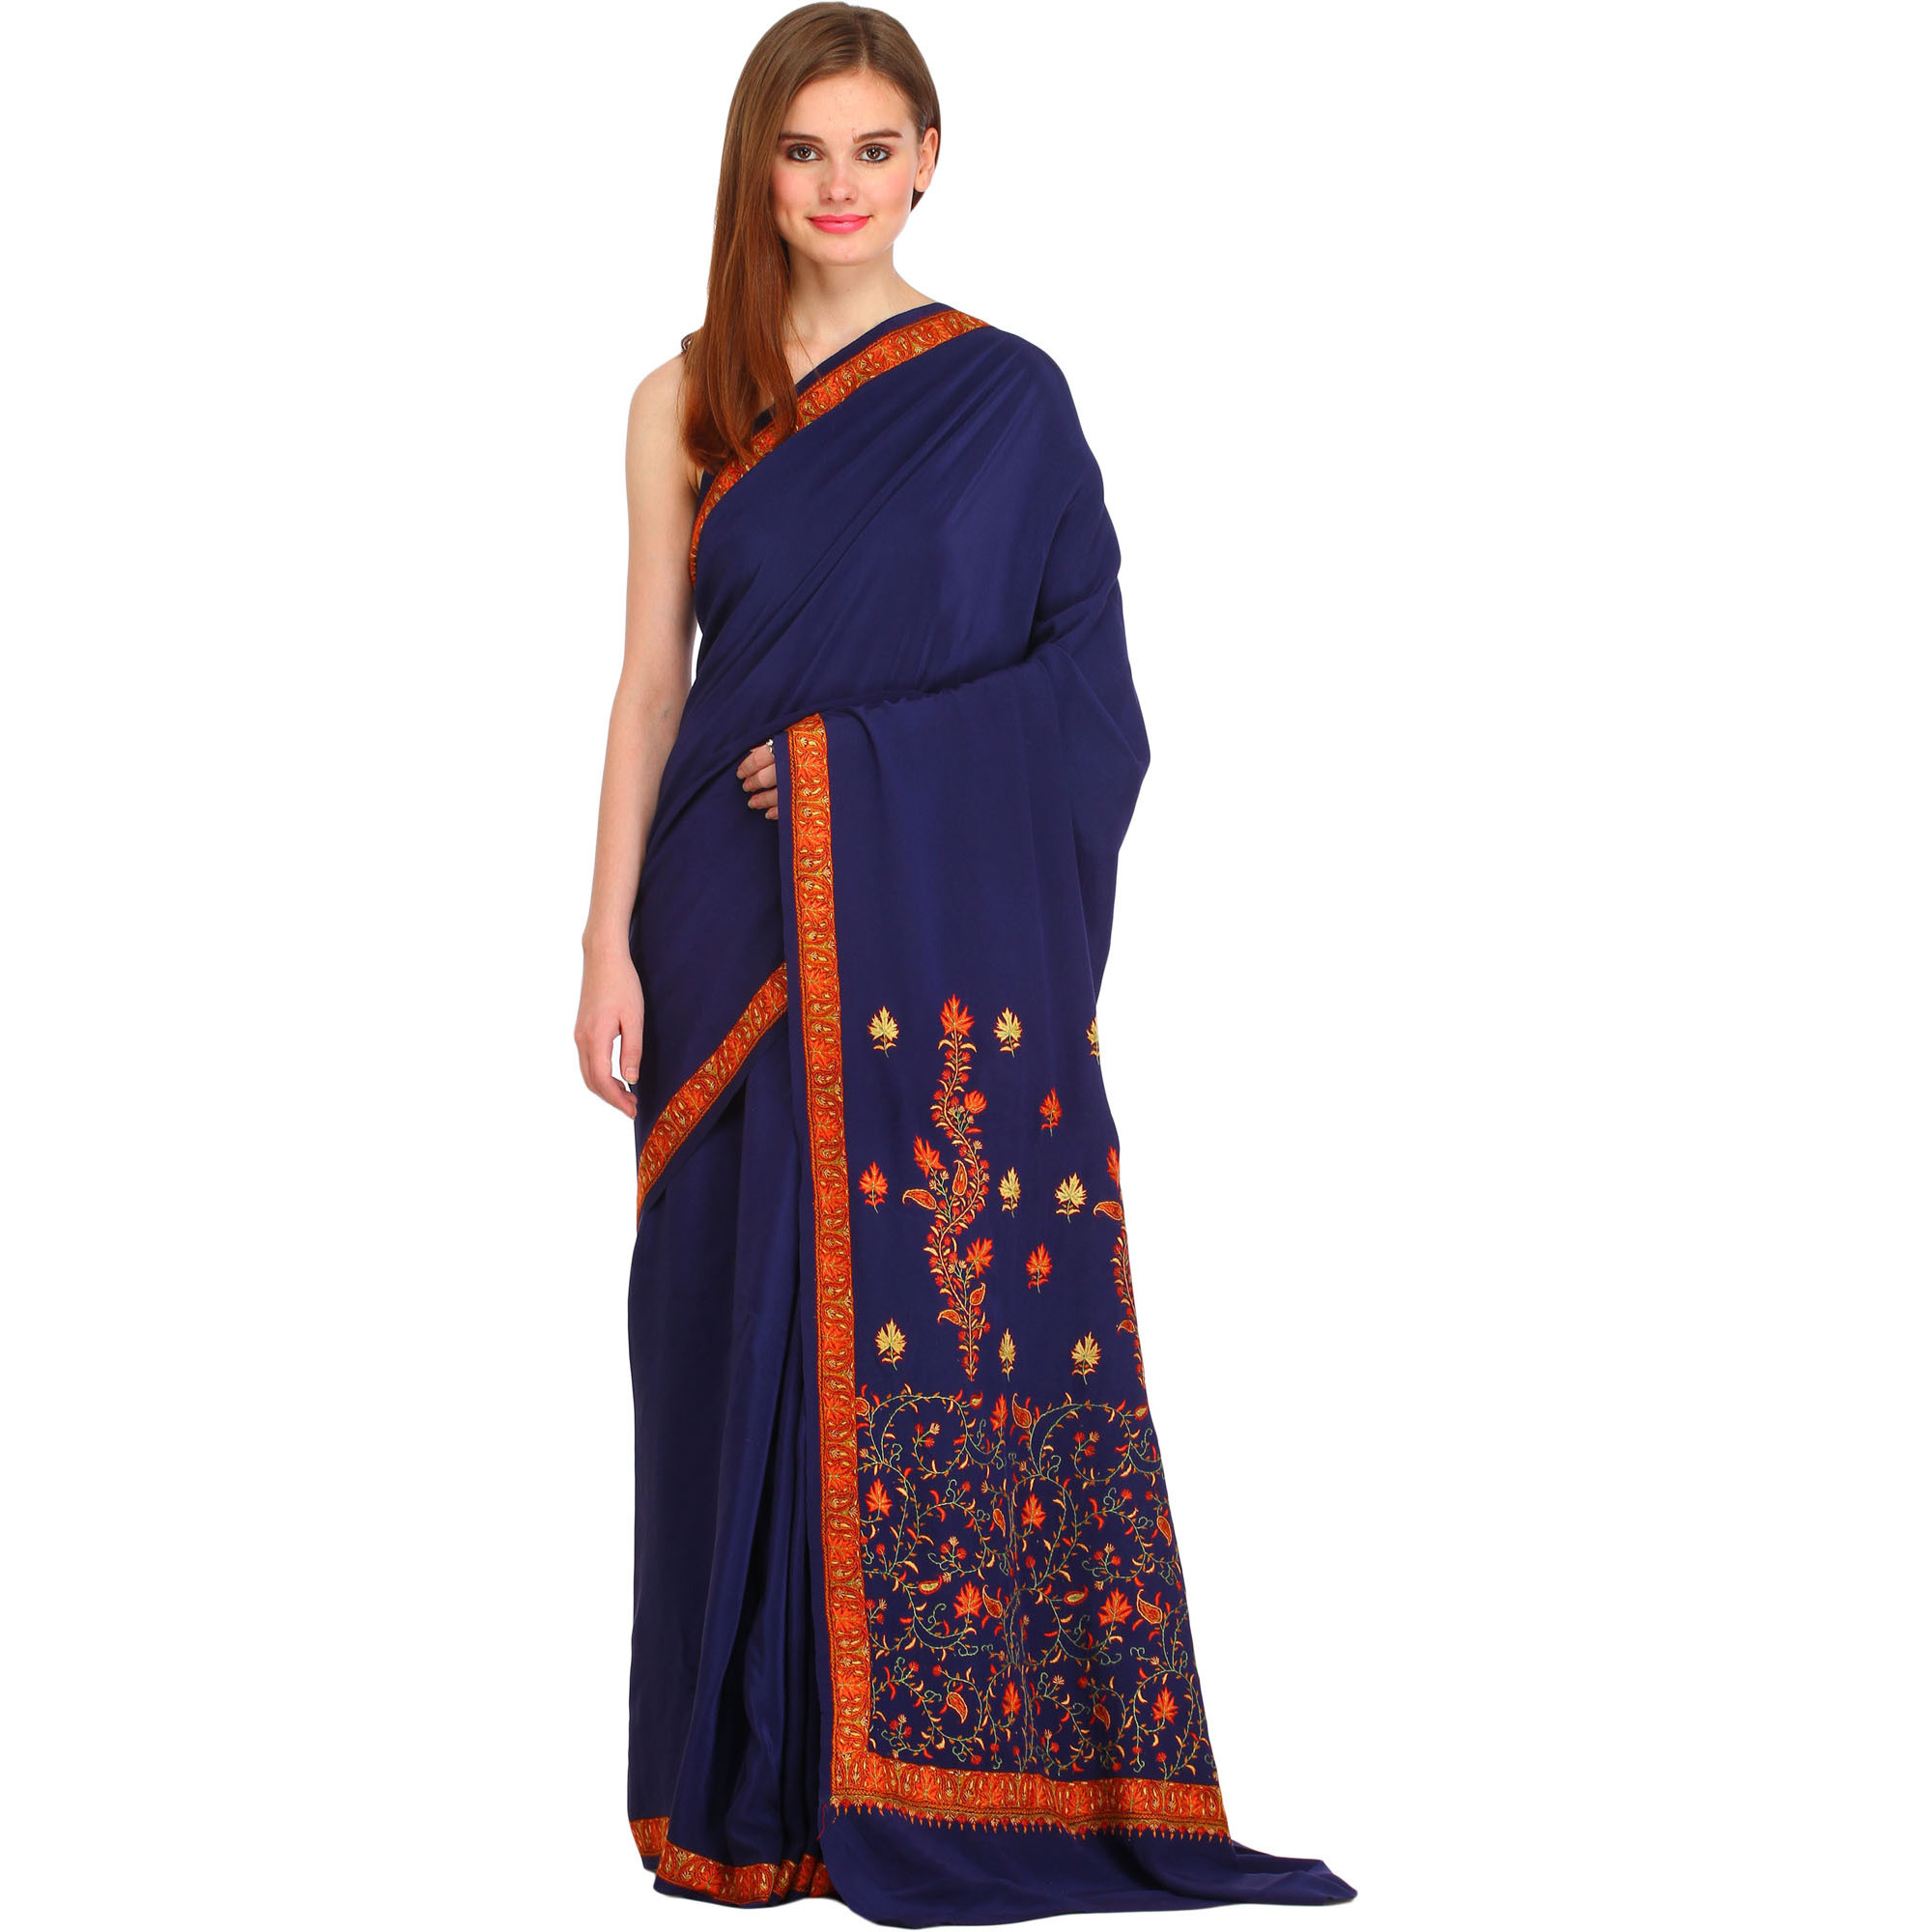 Blue-Depths Plain Kashmiri Sari with Needle Hand-Embroidered Maple Leaves on Pallu